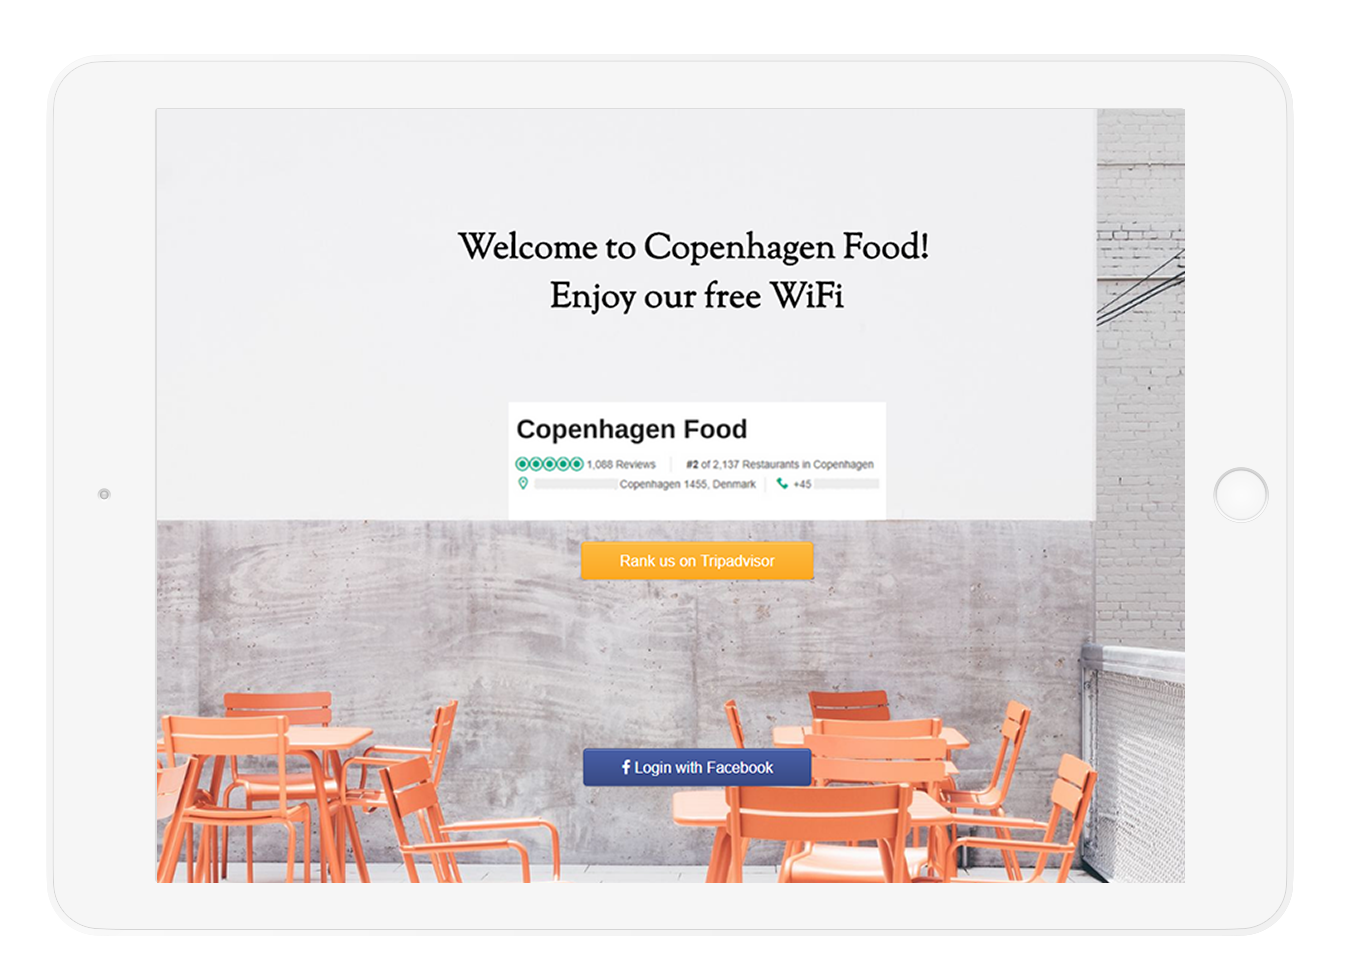 Welcome to Copenghanen Food Free WiFi